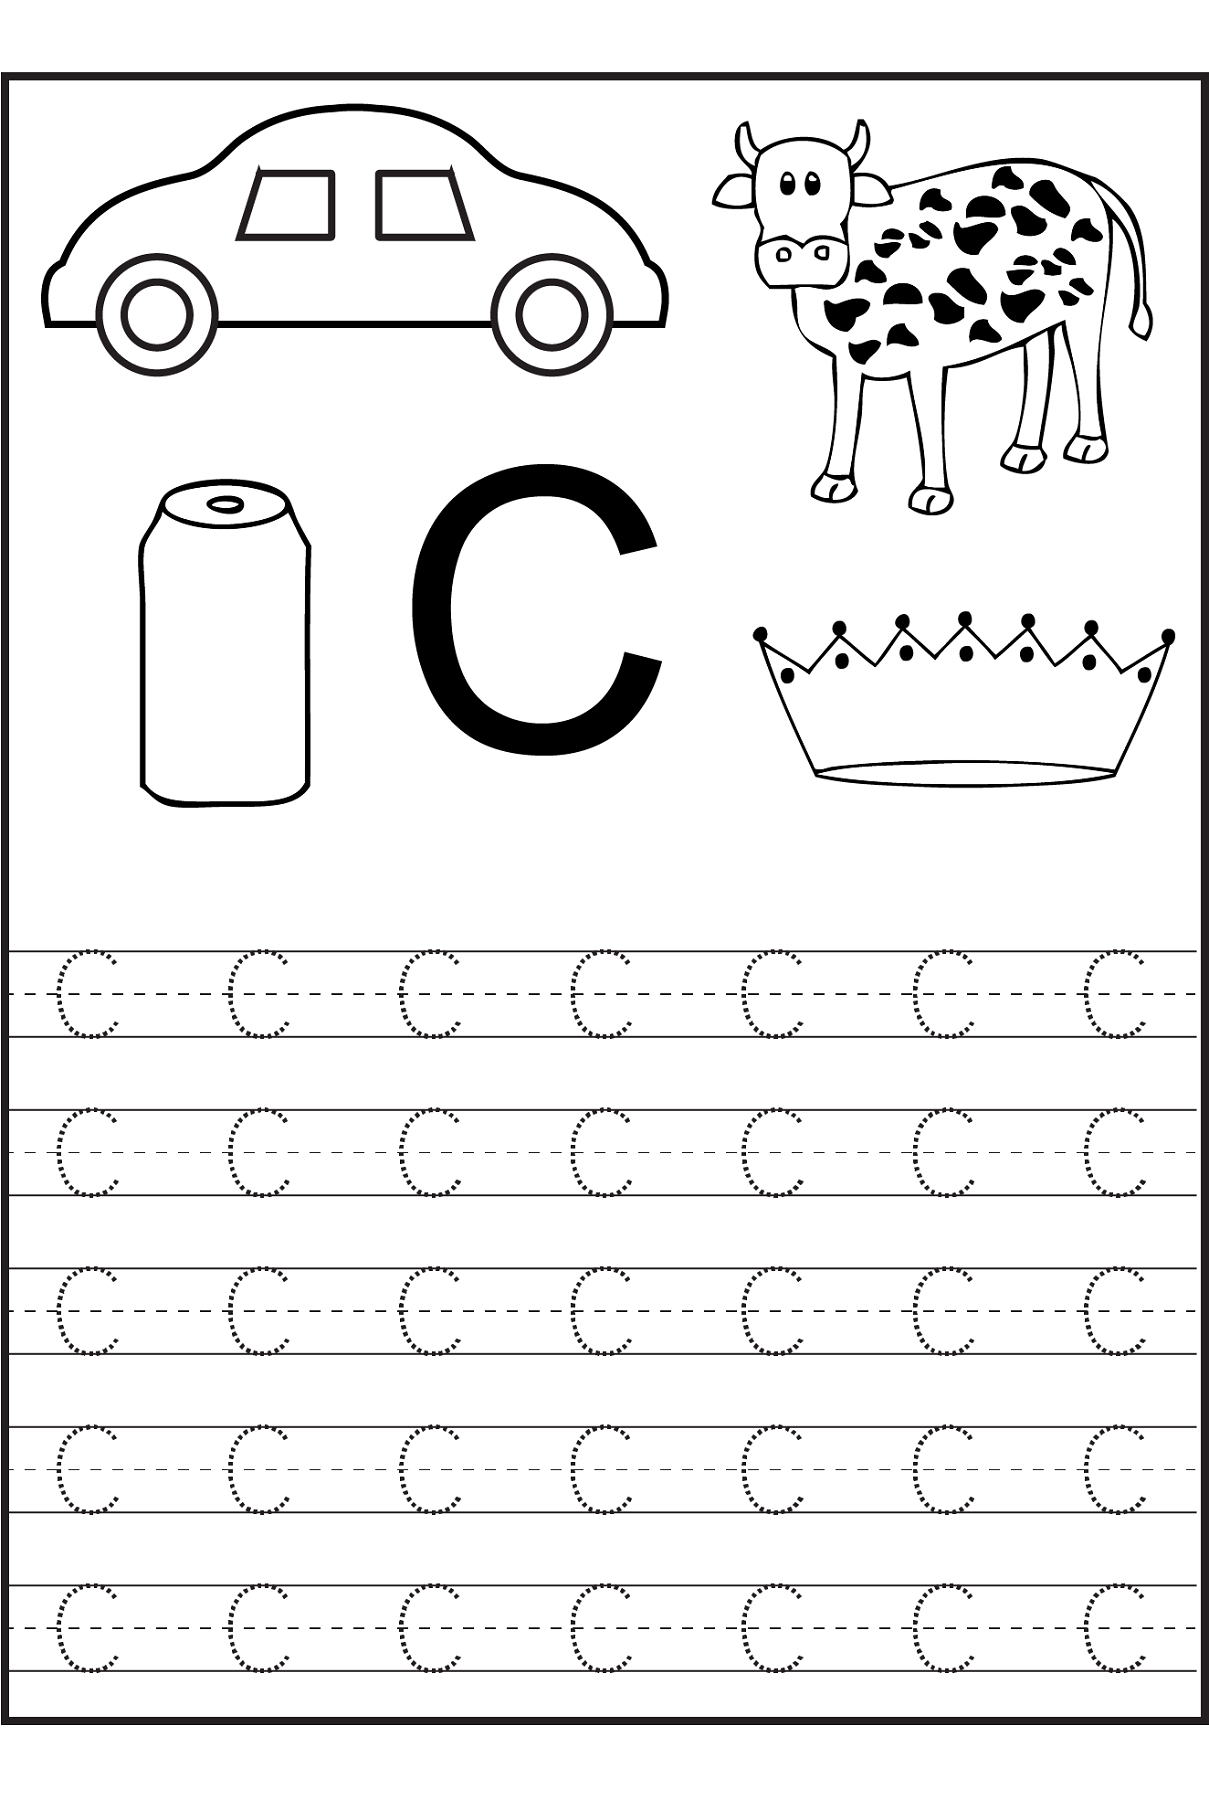 Trace The Letter C Worksheets | Preschool Worksheets, Letter pertaining to Tracing Letters For Nursery